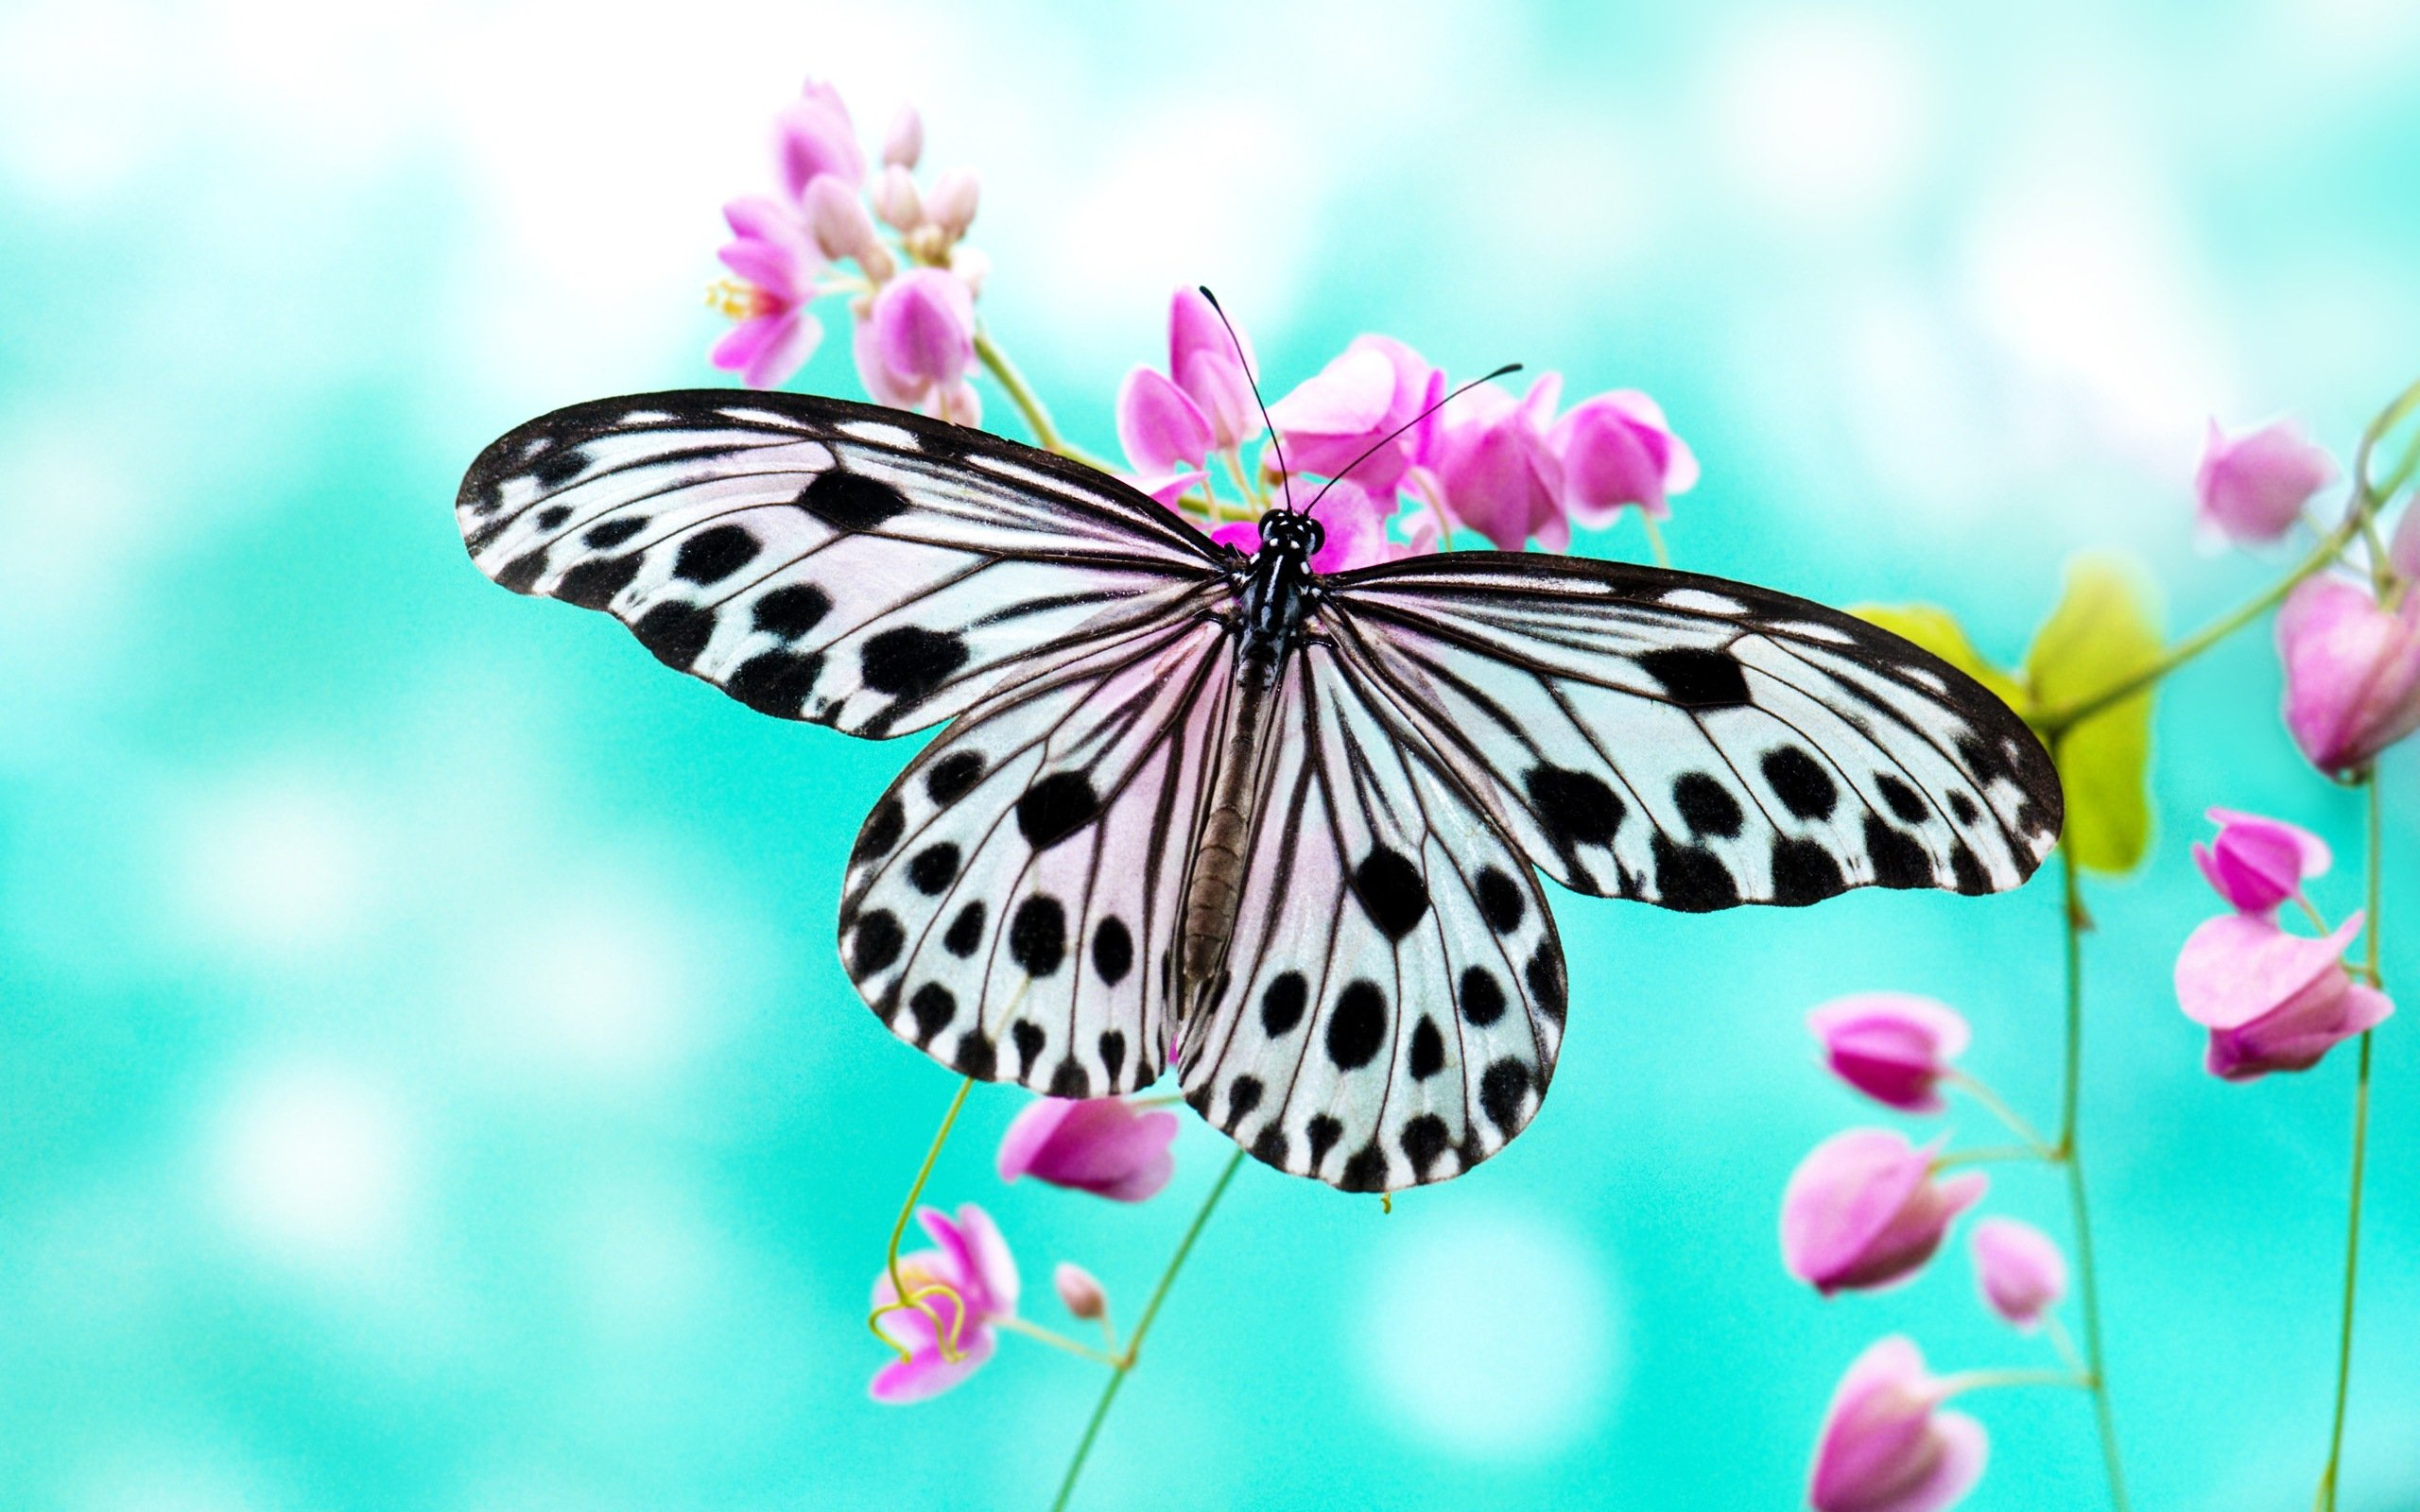 Butterfly wallpaper   Best HD Wallpaper 2560x1600